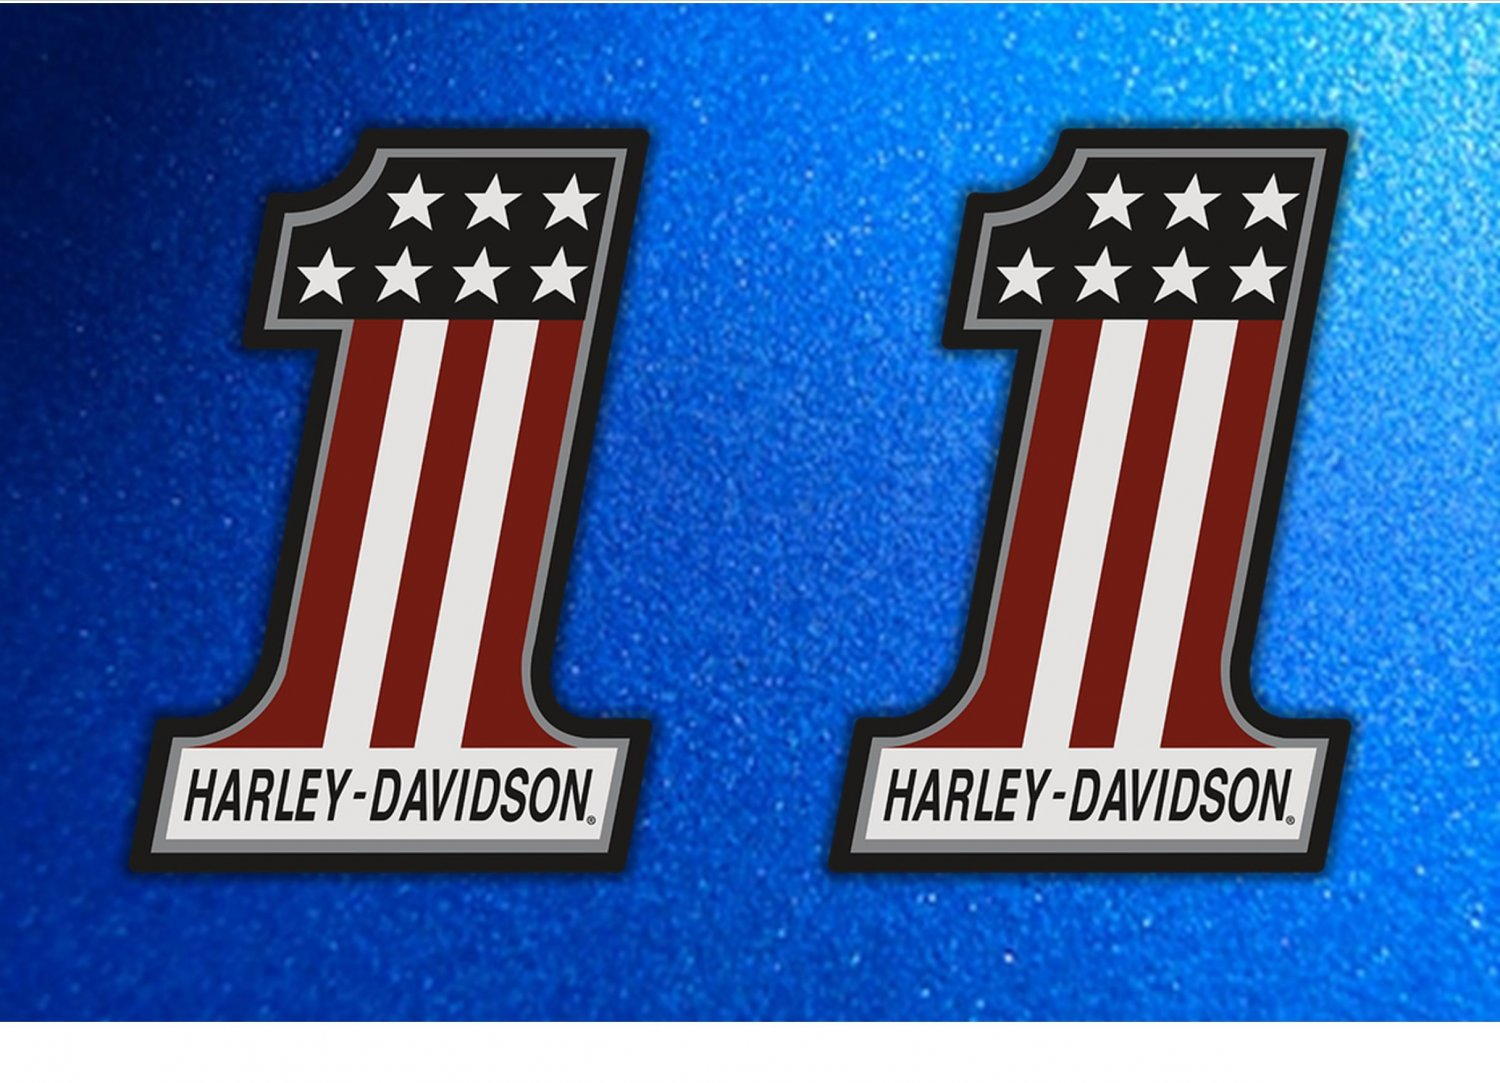 Harley Davidson USA Emblem Number 1 Logo Stickers x 2 Included, (Laminated) Water Resistant (120mm)